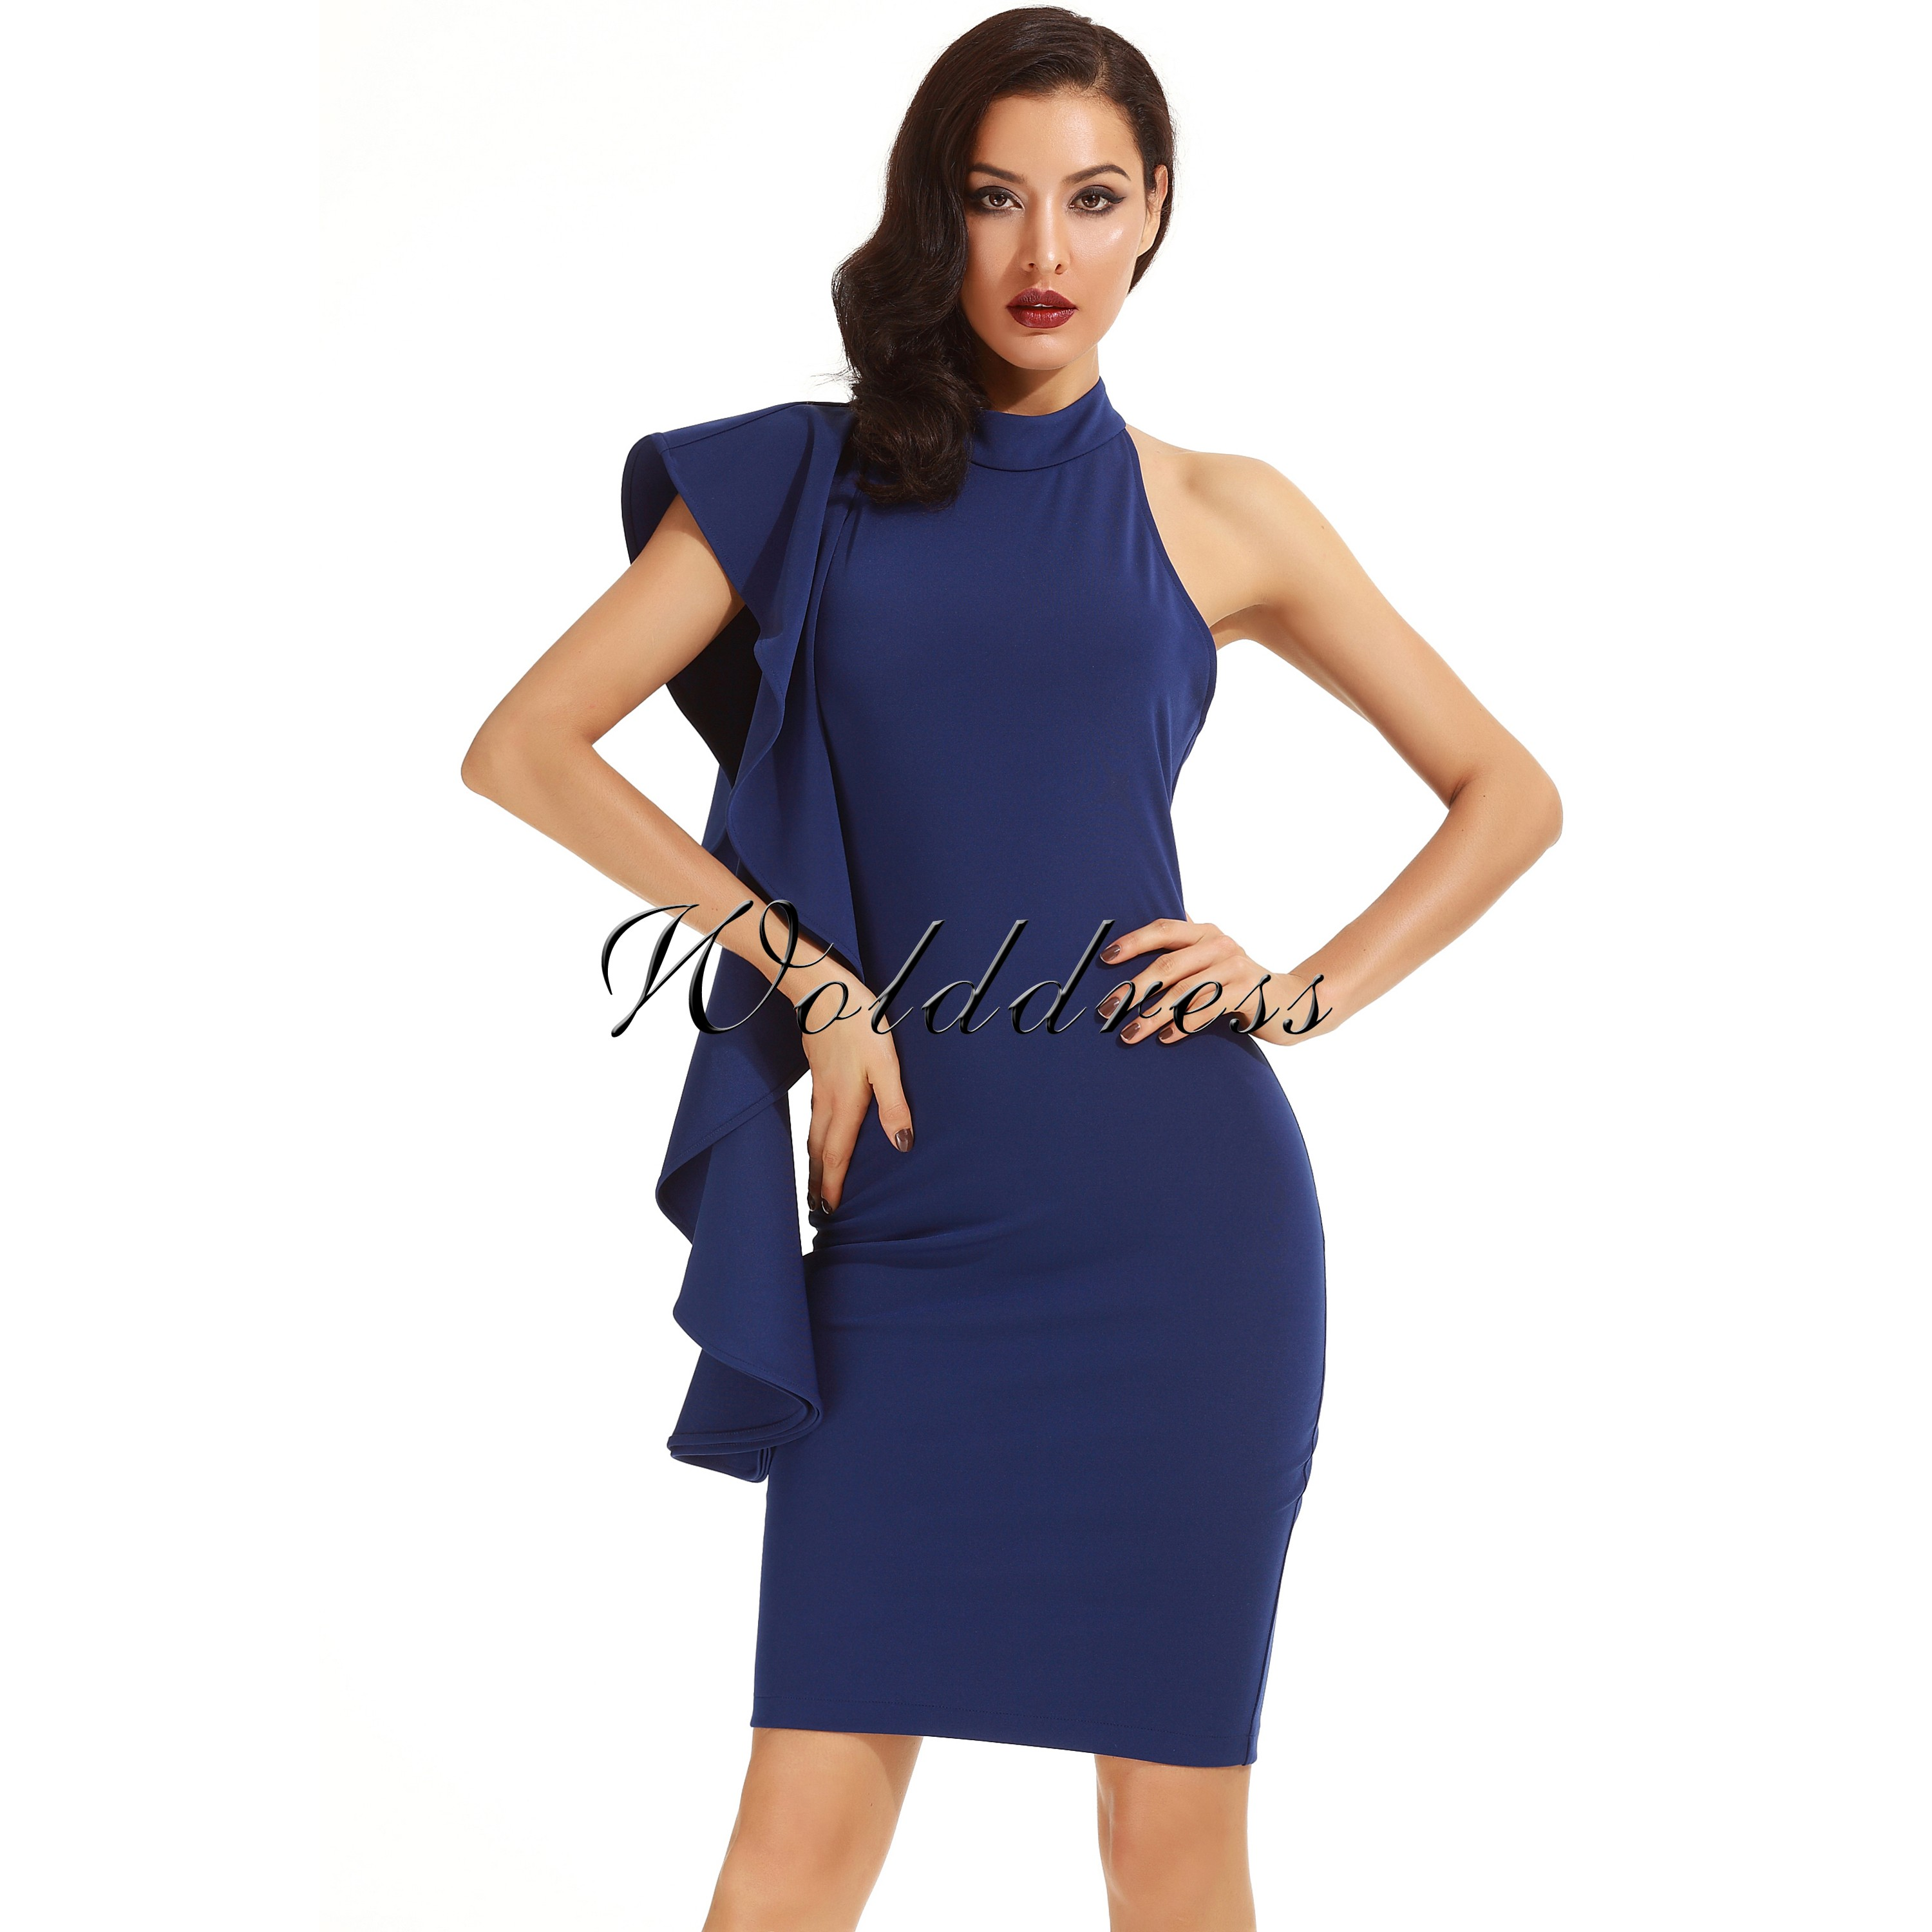 Blue Halter Sleeveless Knee Length Ruffles Elegant Bodycon Dress HD398-Blue